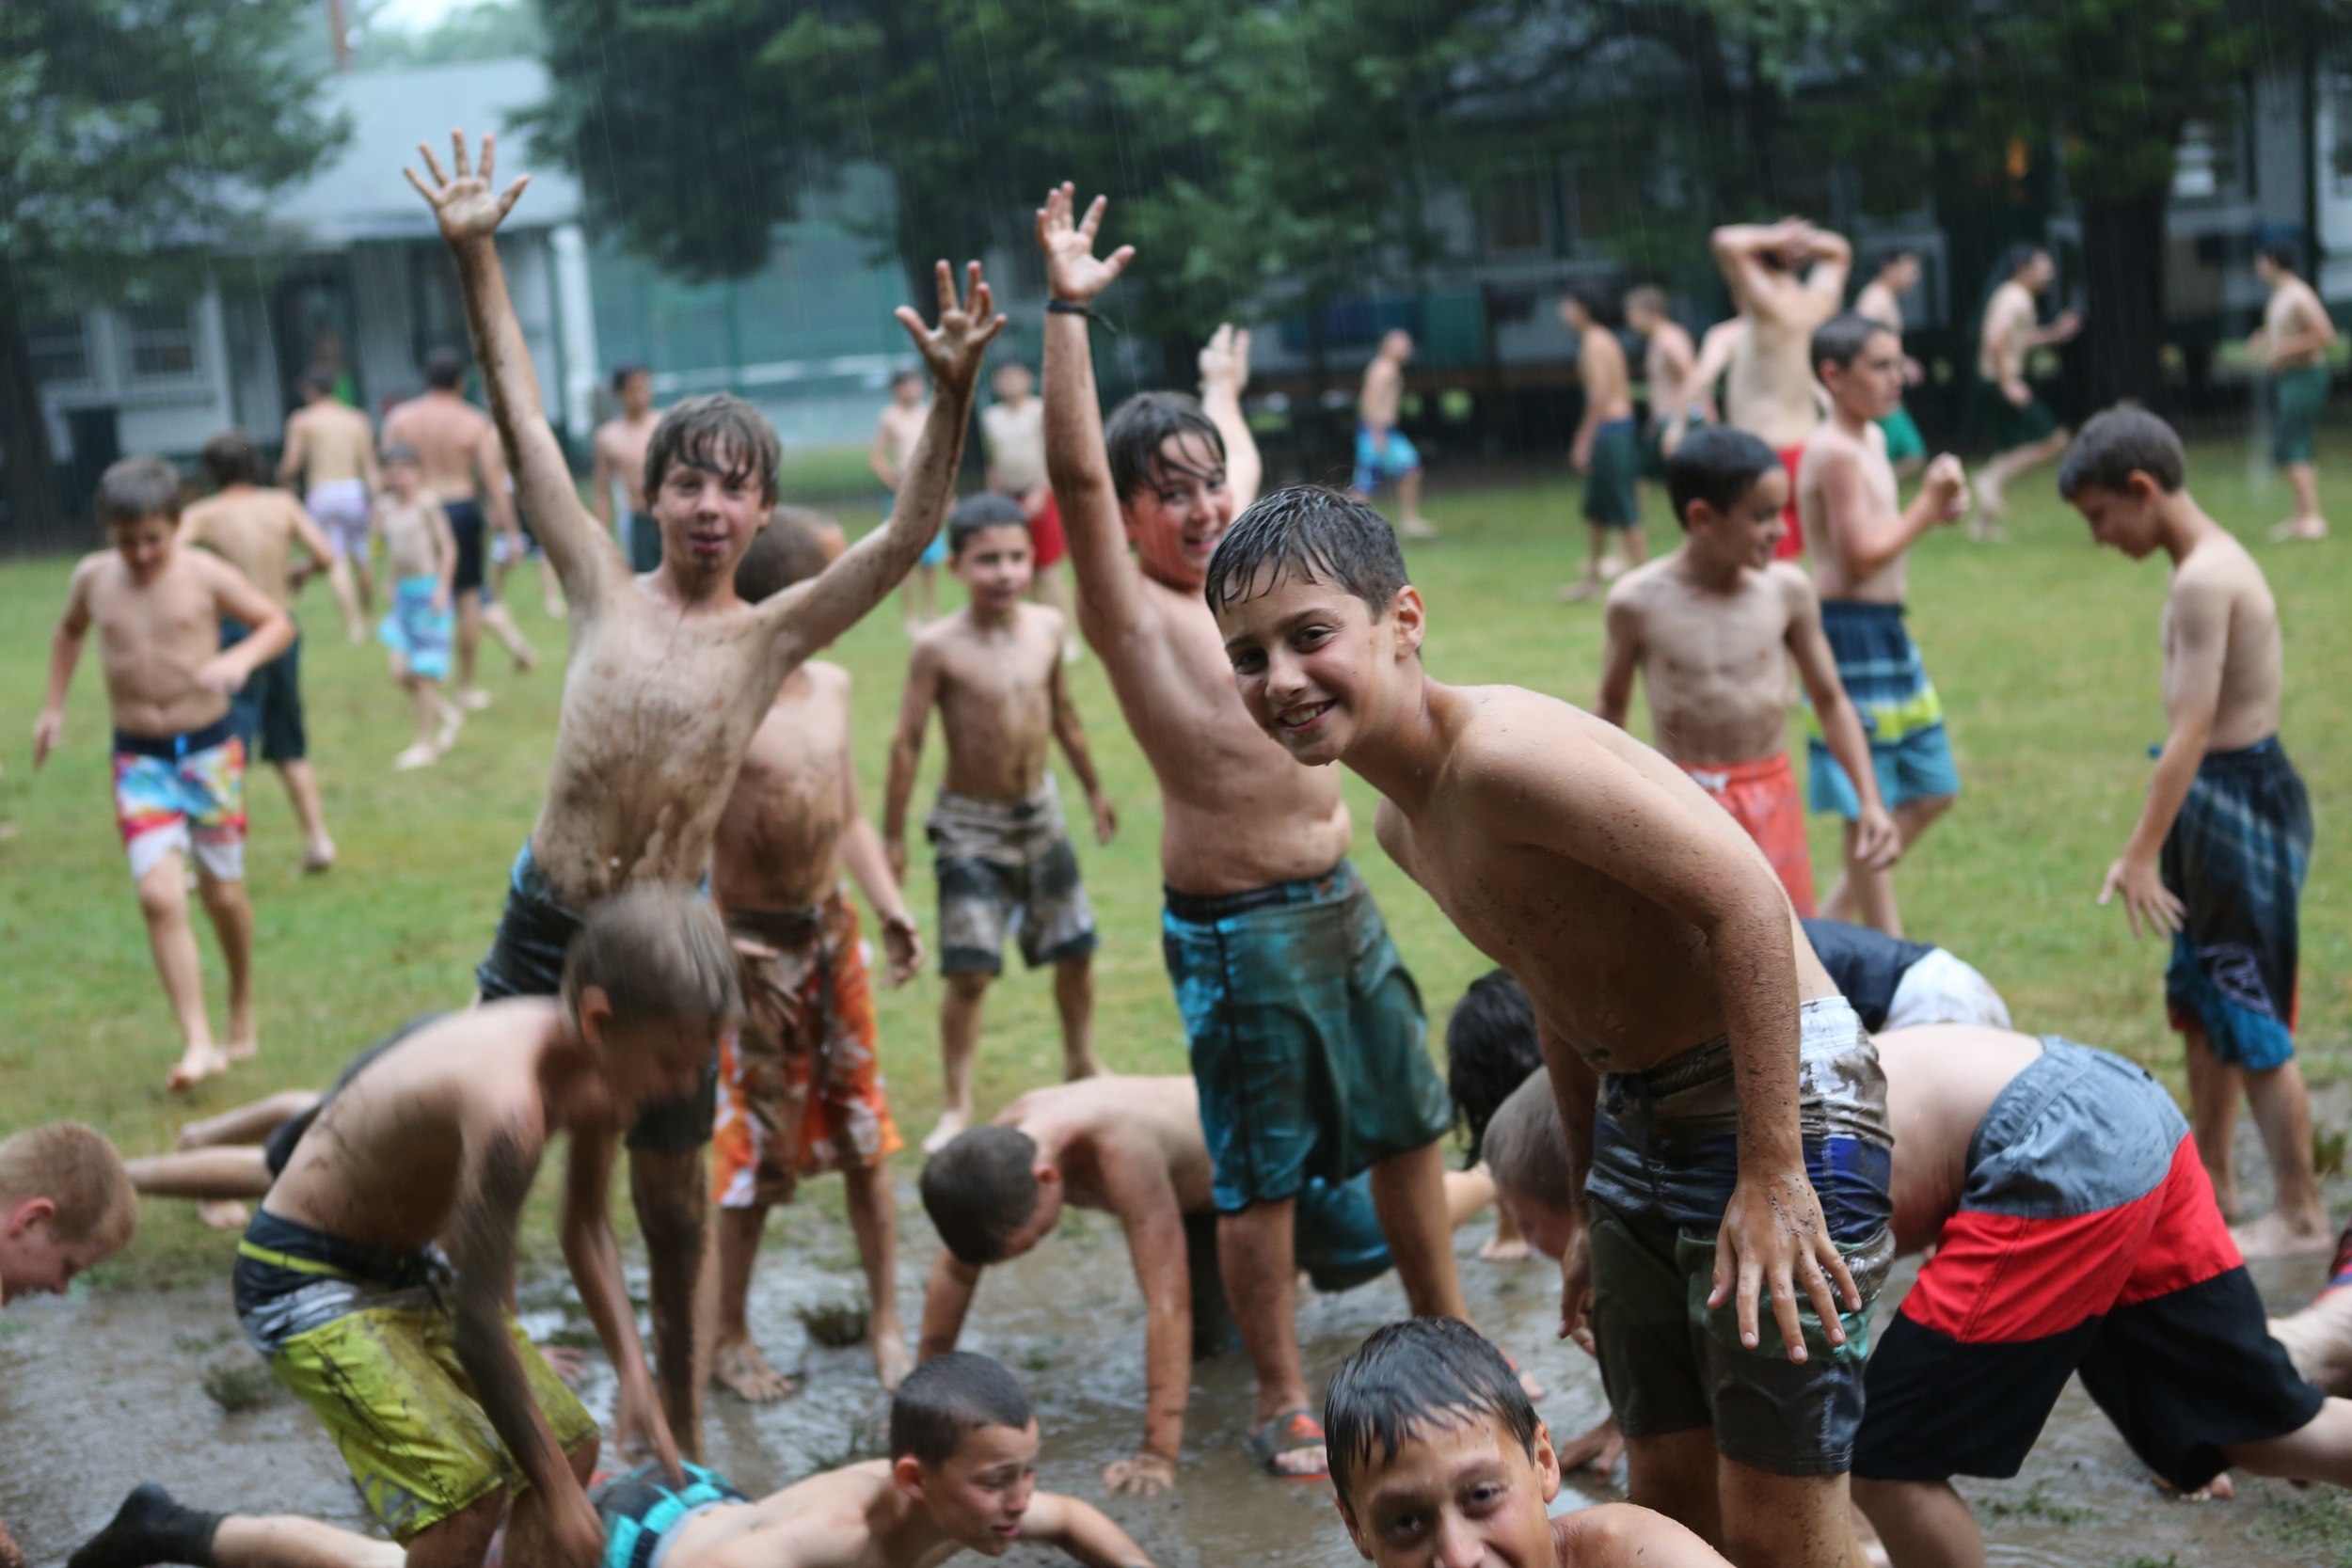 A little rain doesn't get us down! Boys side enjoys a mud sliding session during some summer showers...